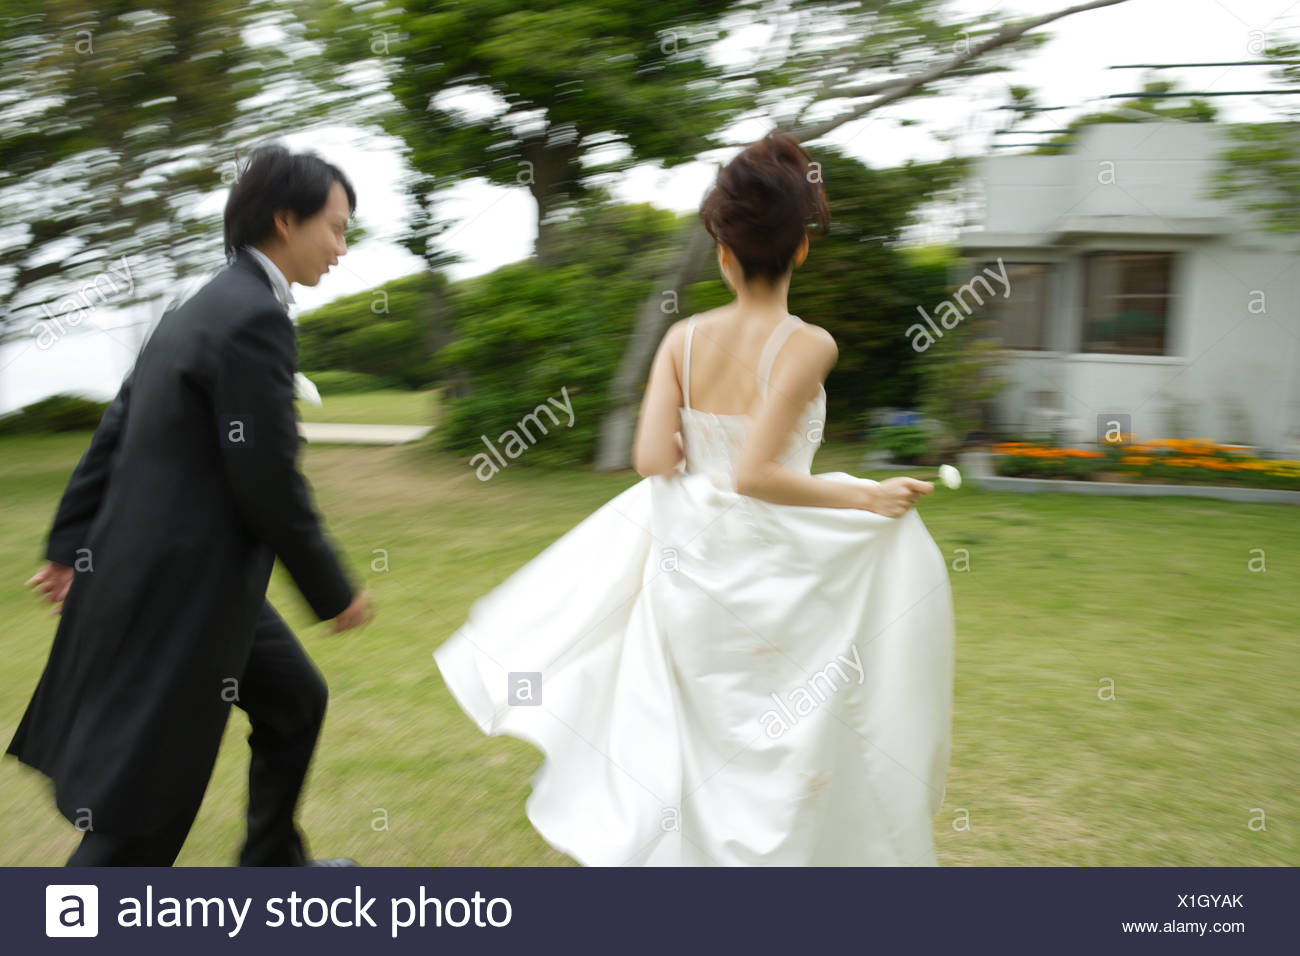 Wondrous Bride And Groom Running On Lawn Blurred Motion Stock Photo Download Free Architecture Designs Scobabritishbridgeorg